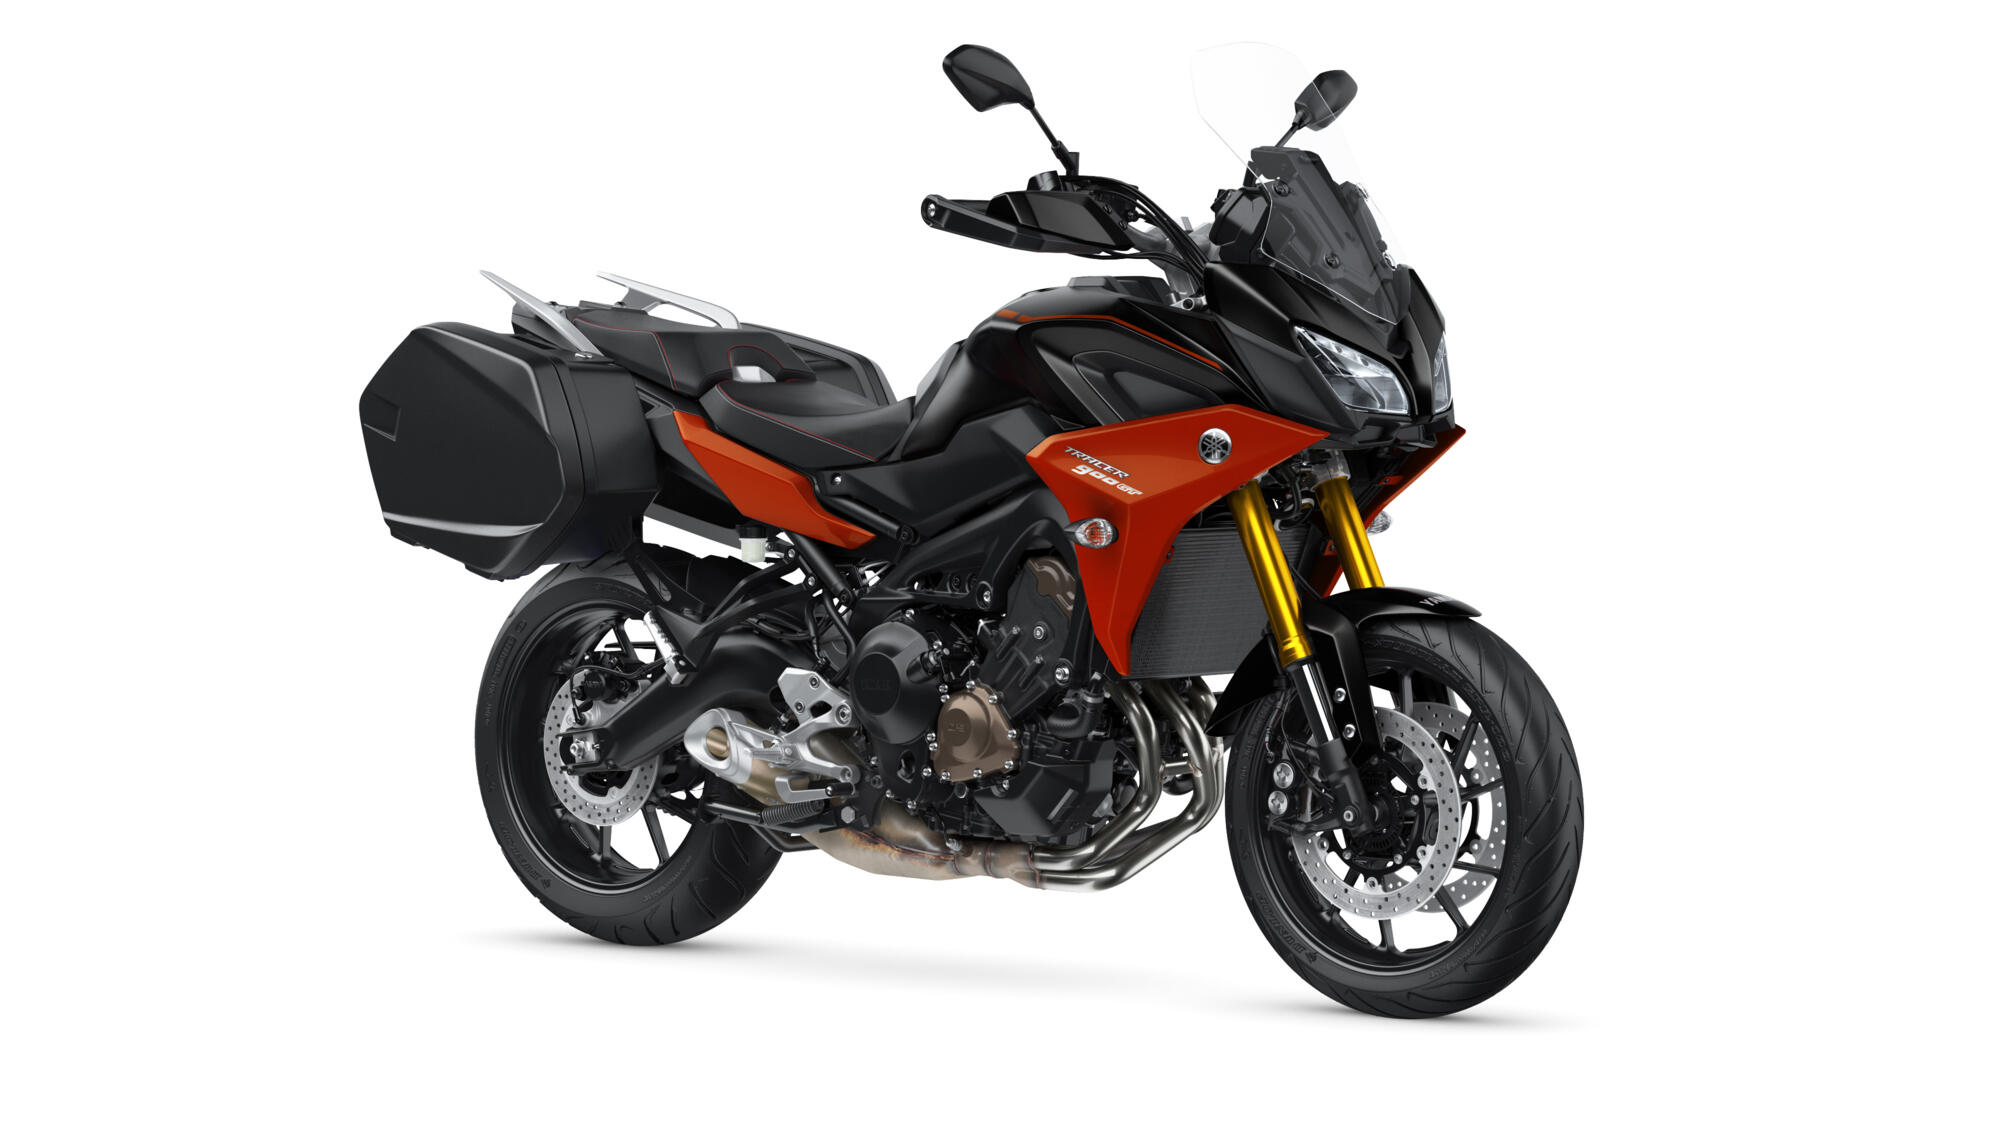 2020-Yamaha-MT09TRGT-EU-Tech_Black-Studio-001-03